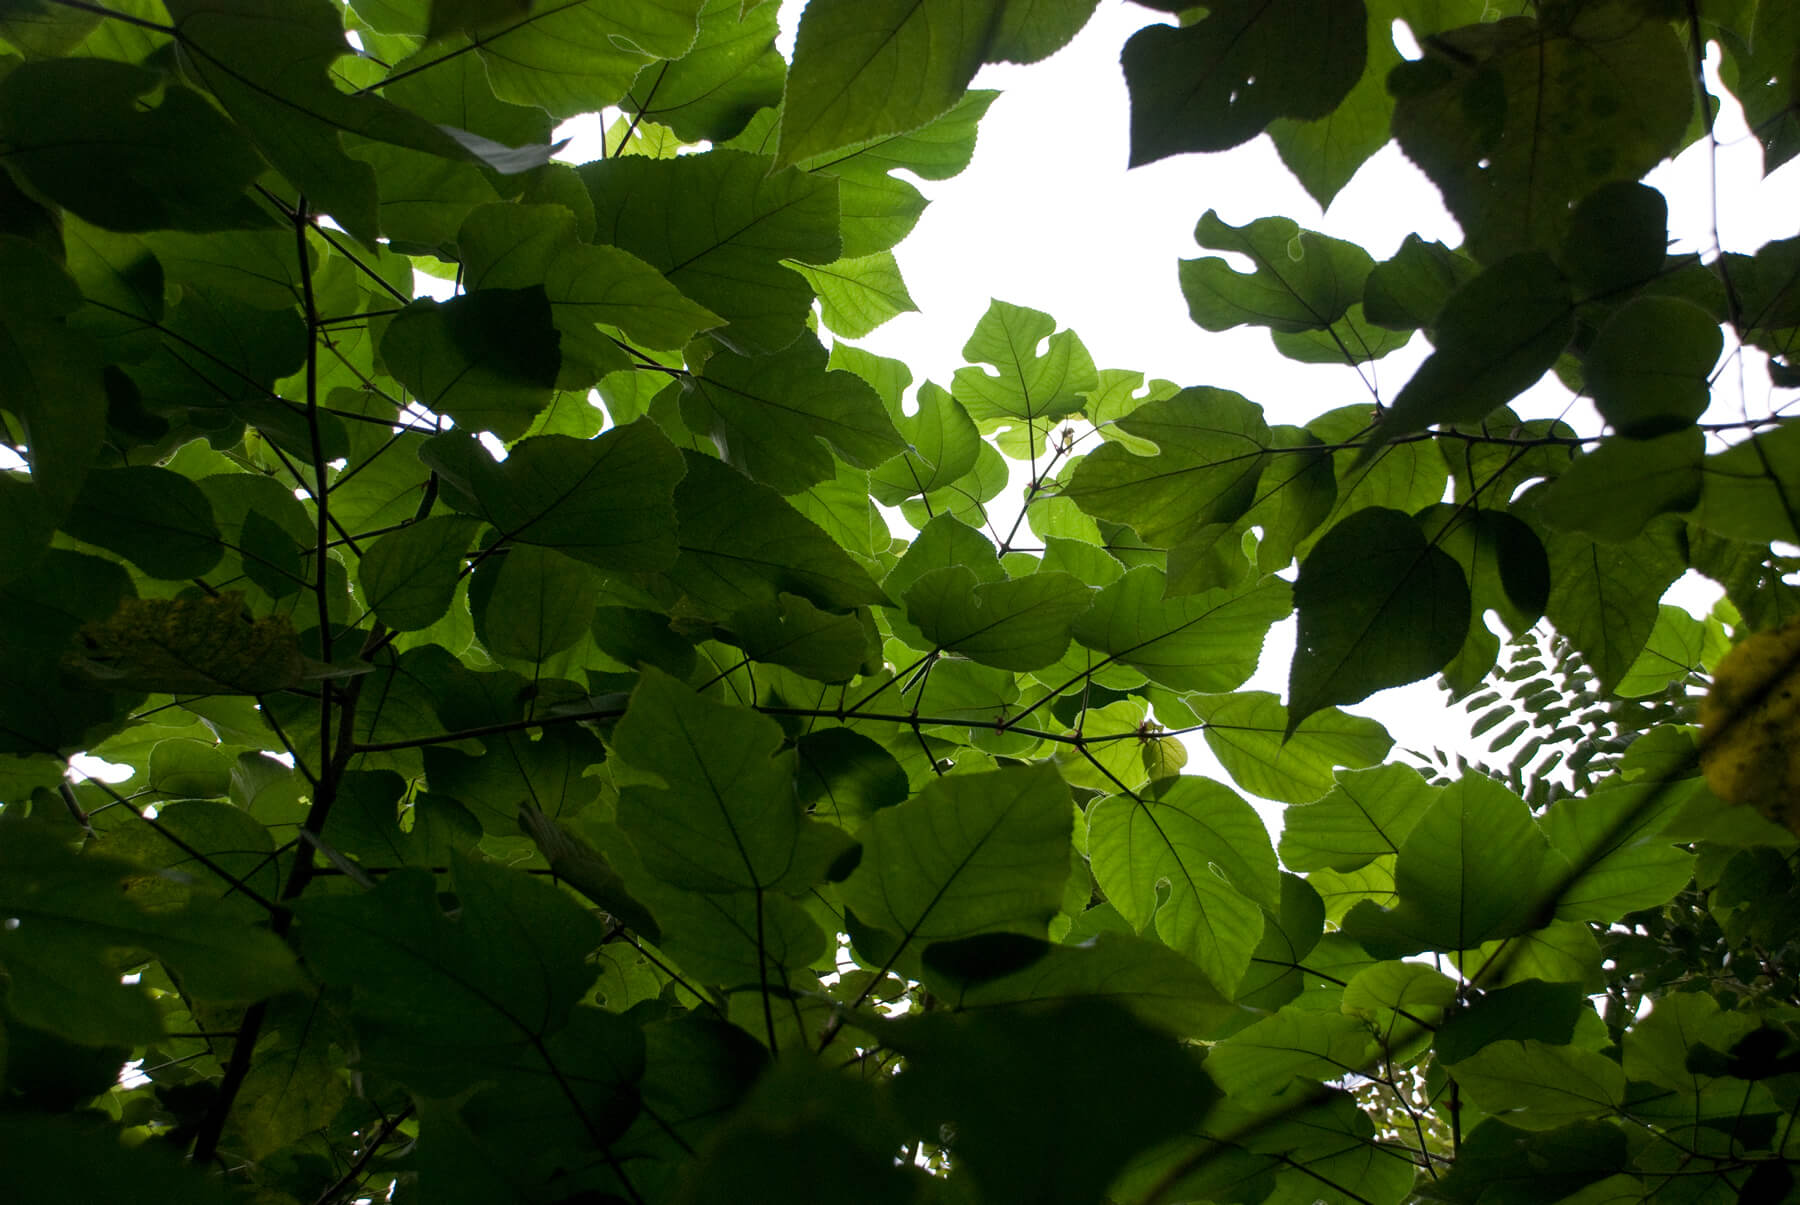 pulp-mulberry-growing-1_T.JPG